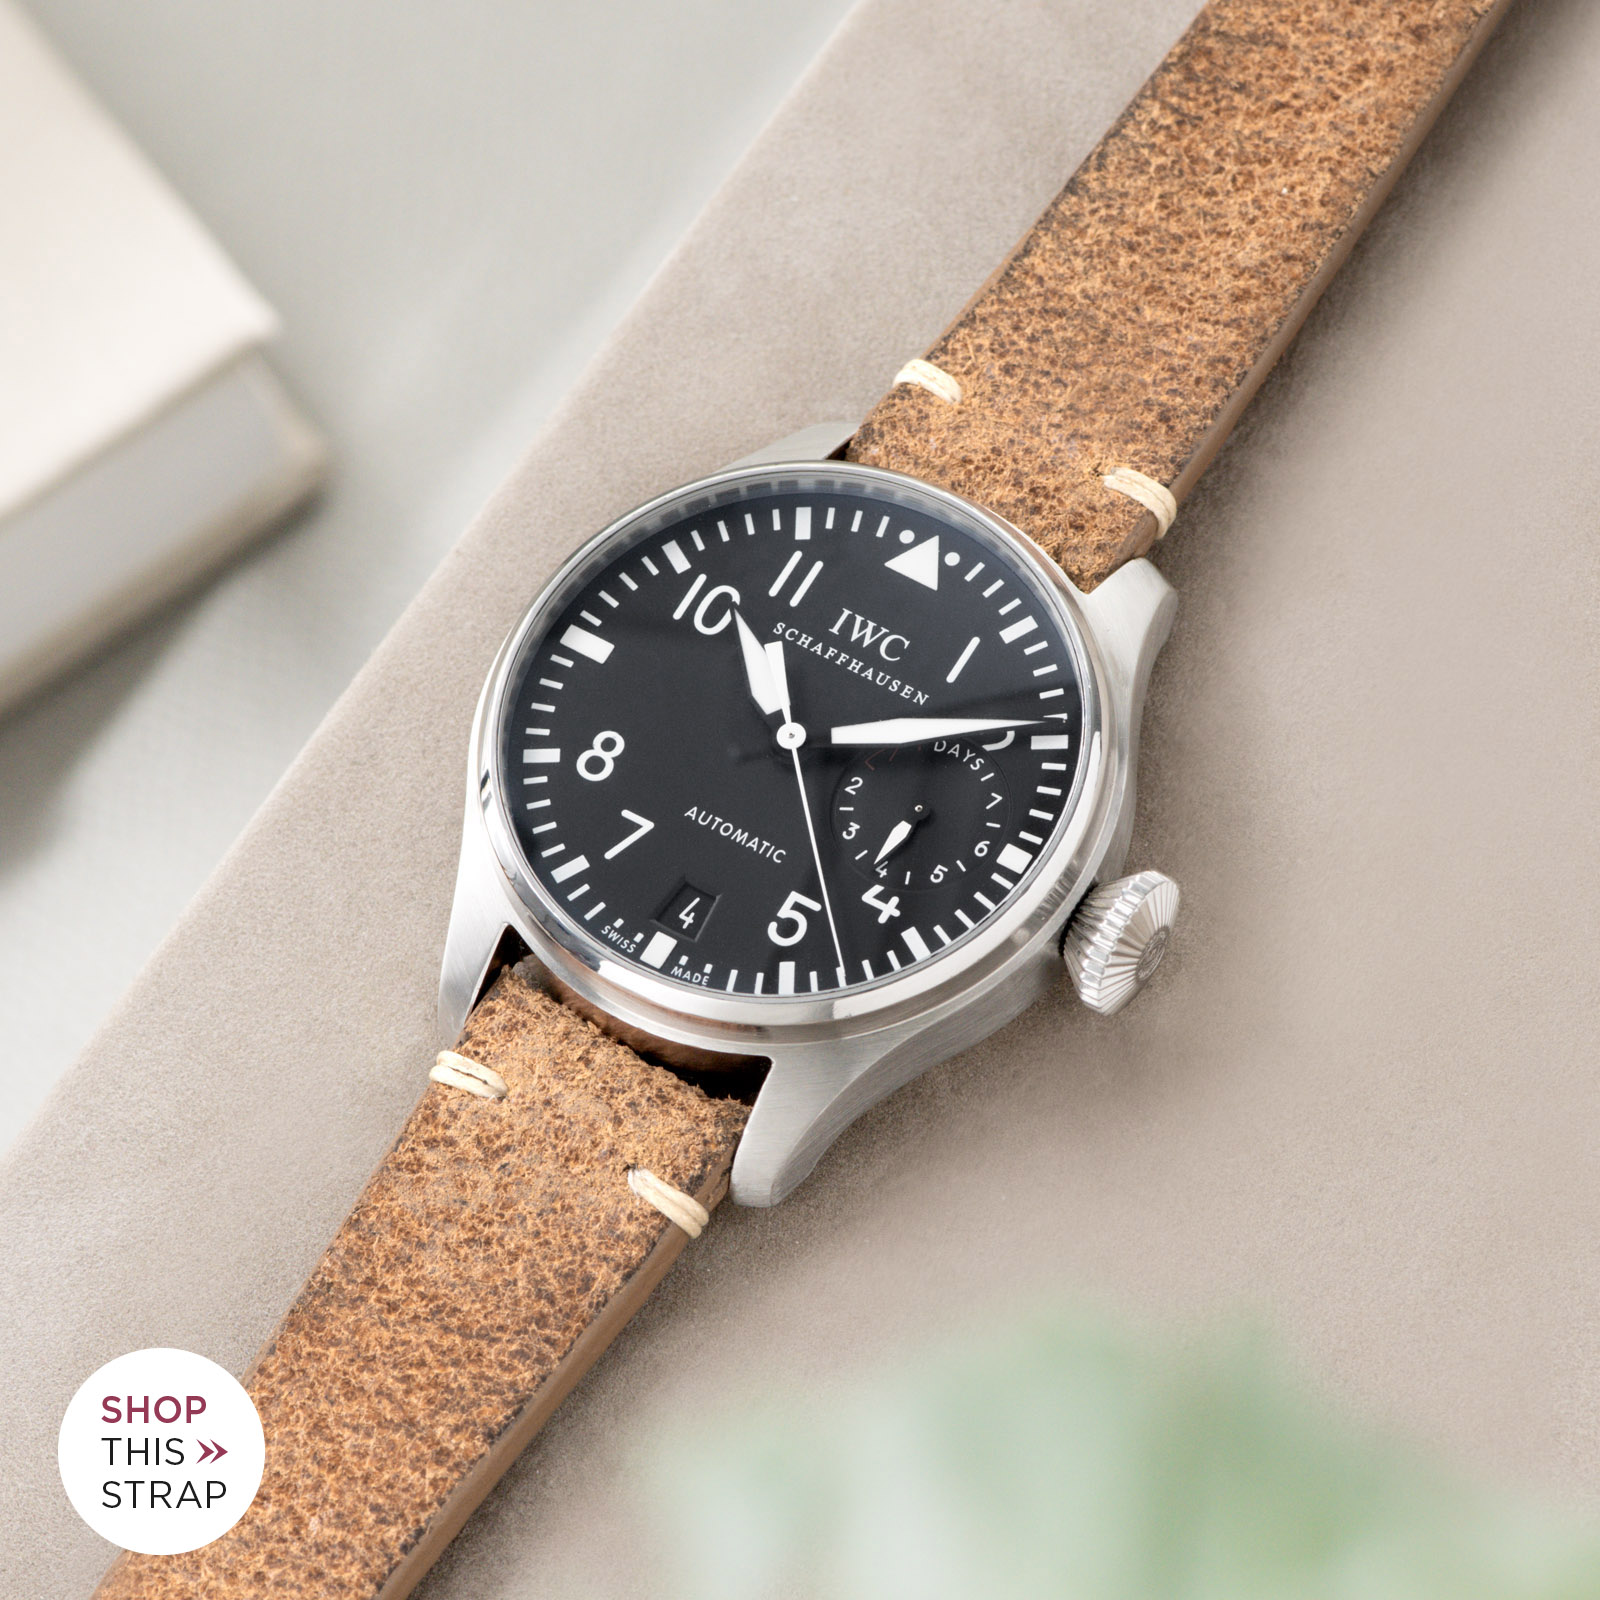 Bulang and Sons_Strap Guide_IWC Big Pilot ref IW5004_Crackle Brown Leather Watch Strap